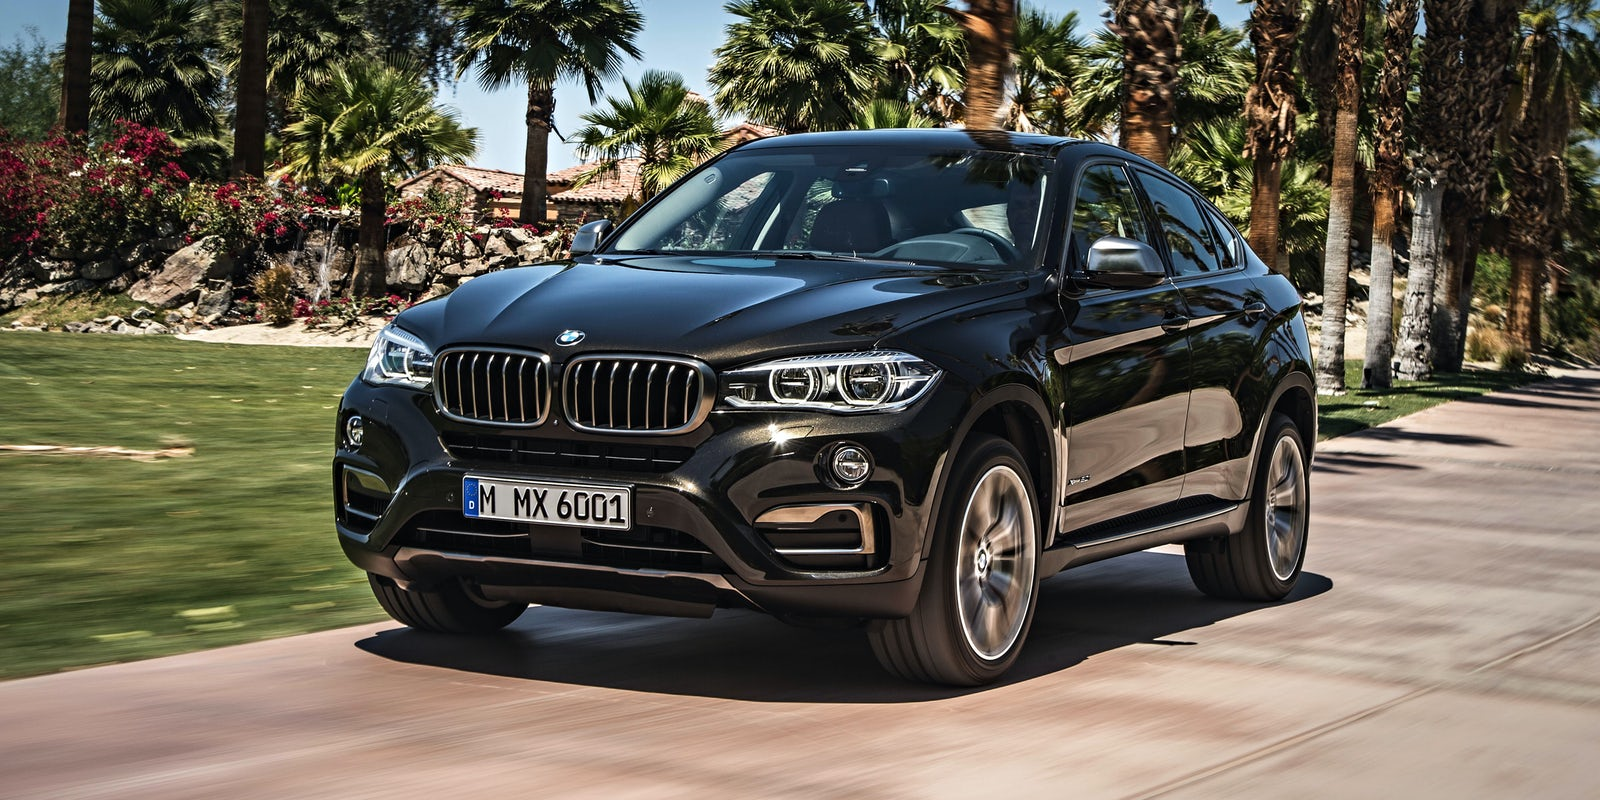 bmw x6 test technische daten preis carwow. Black Bedroom Furniture Sets. Home Design Ideas